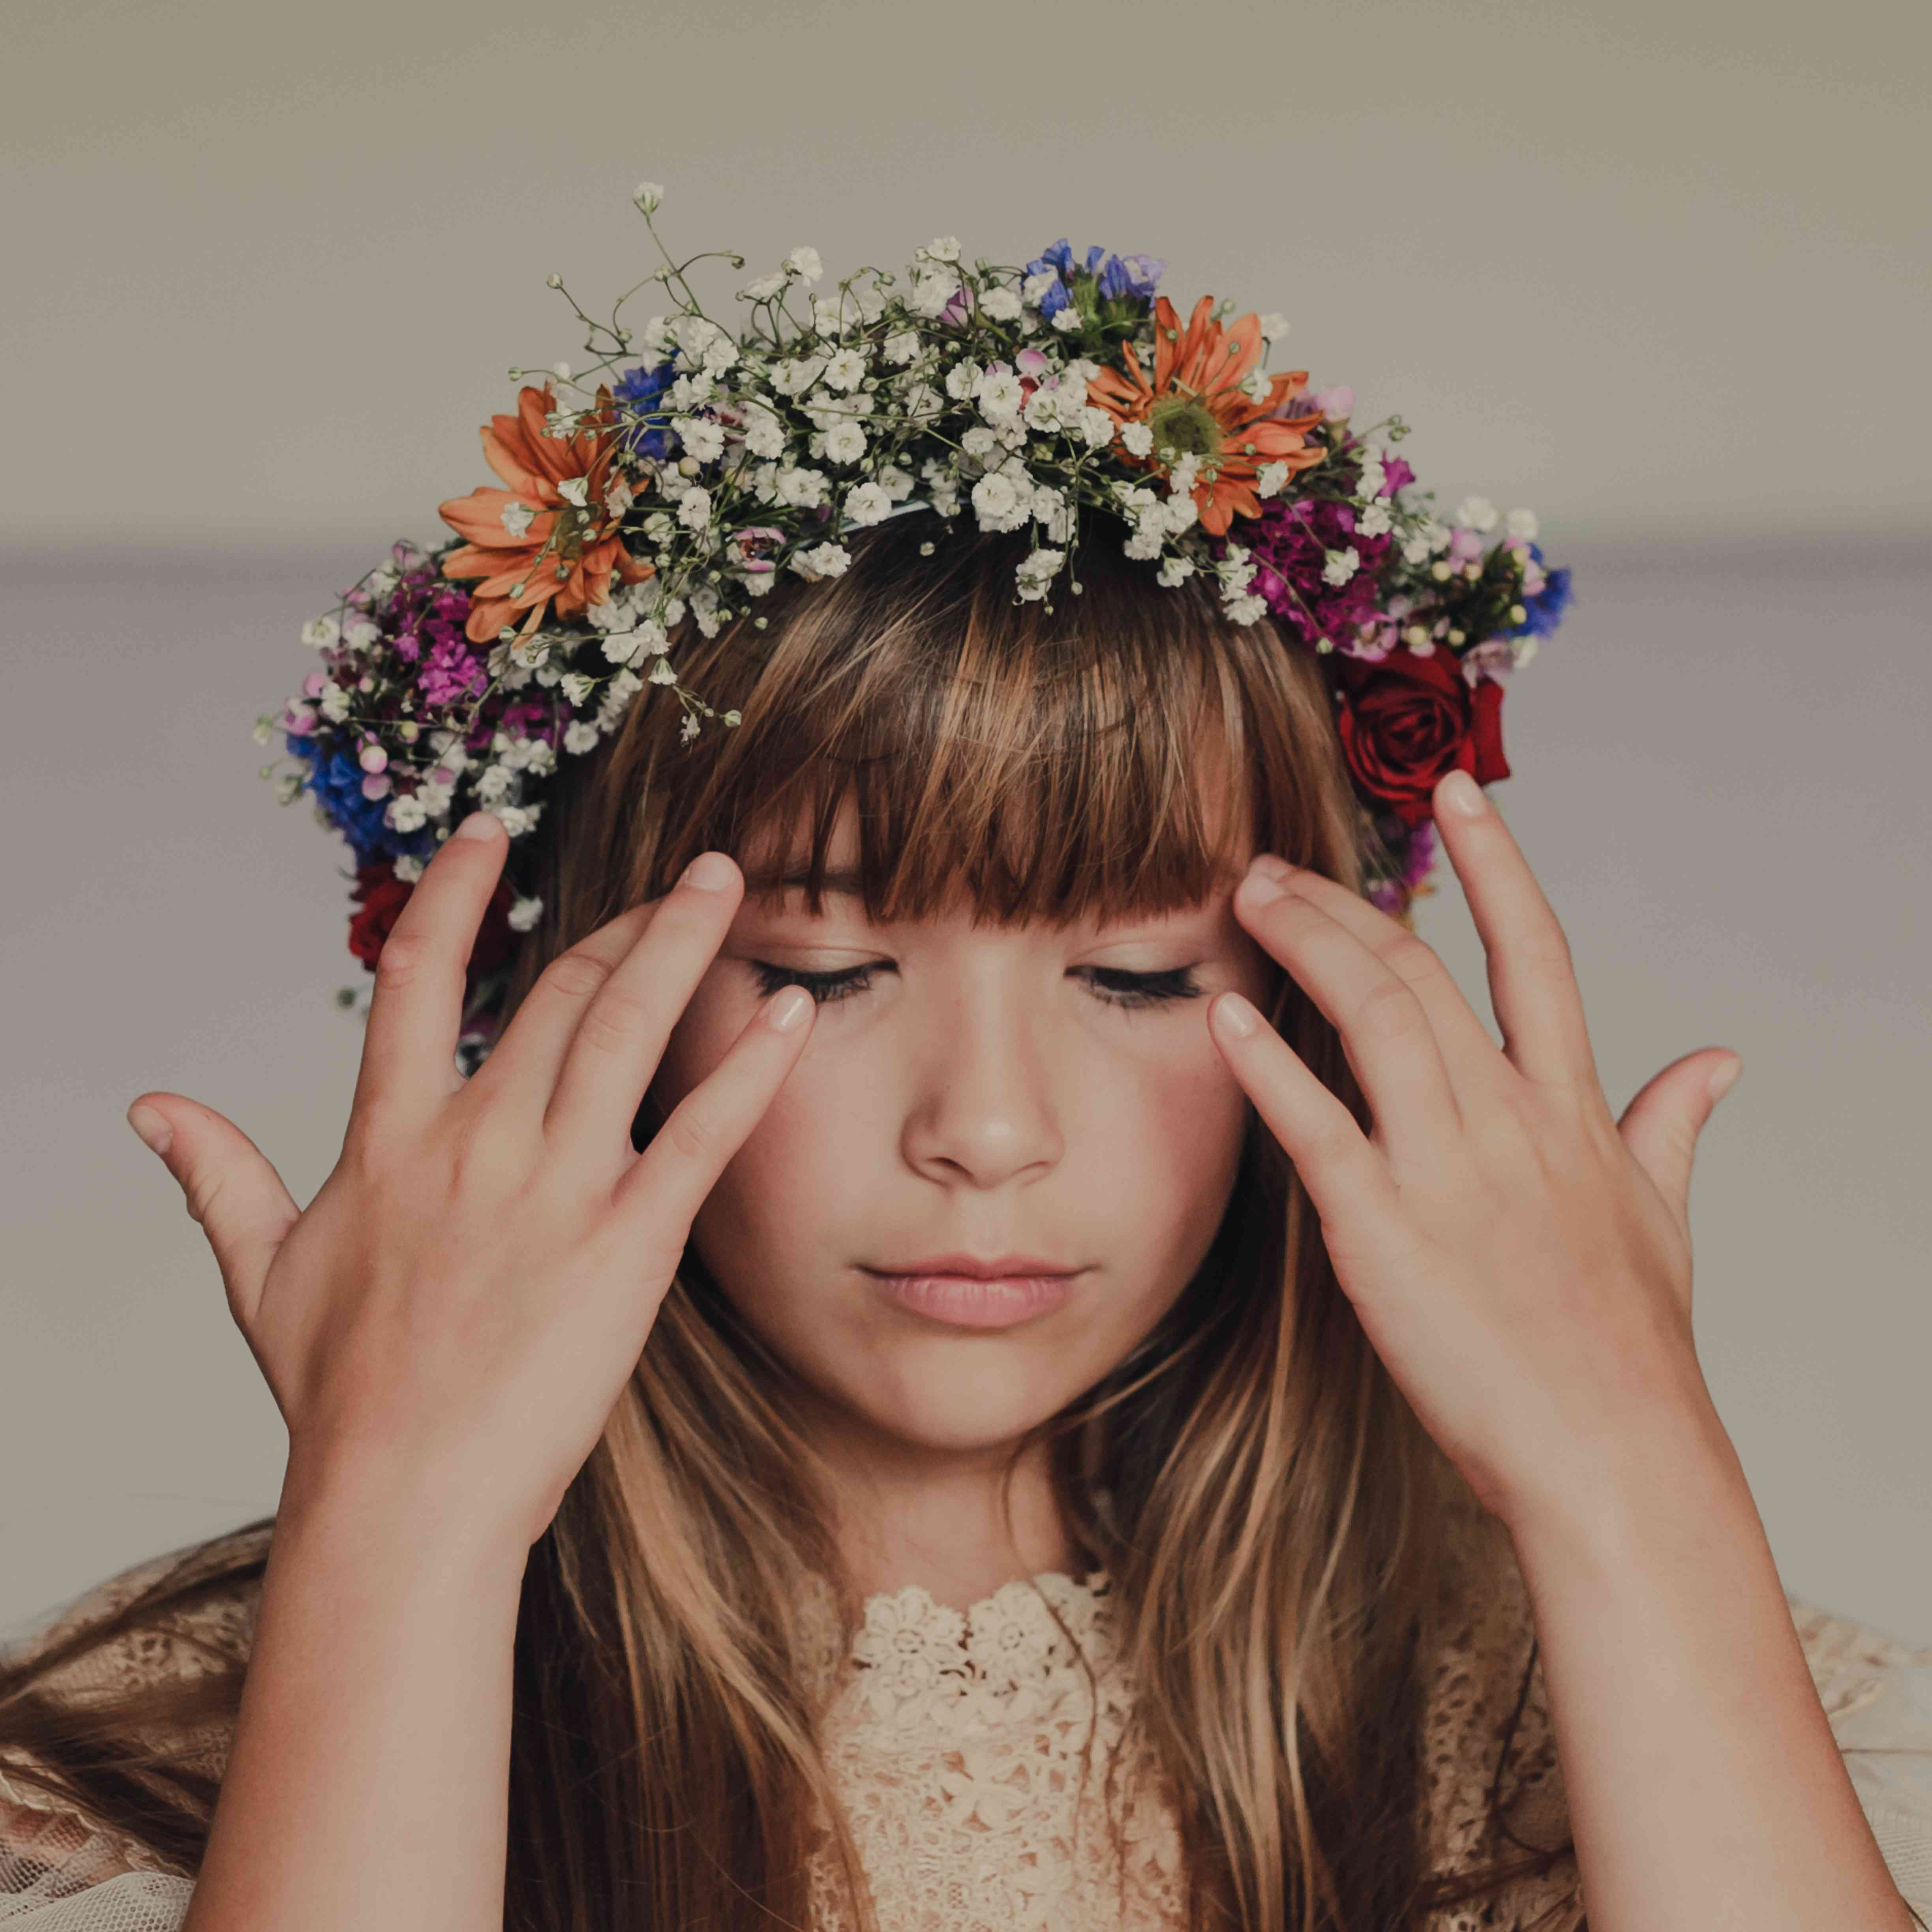 41 Whimsical Flower Crown Ideas For Your Wedding Hairstyle